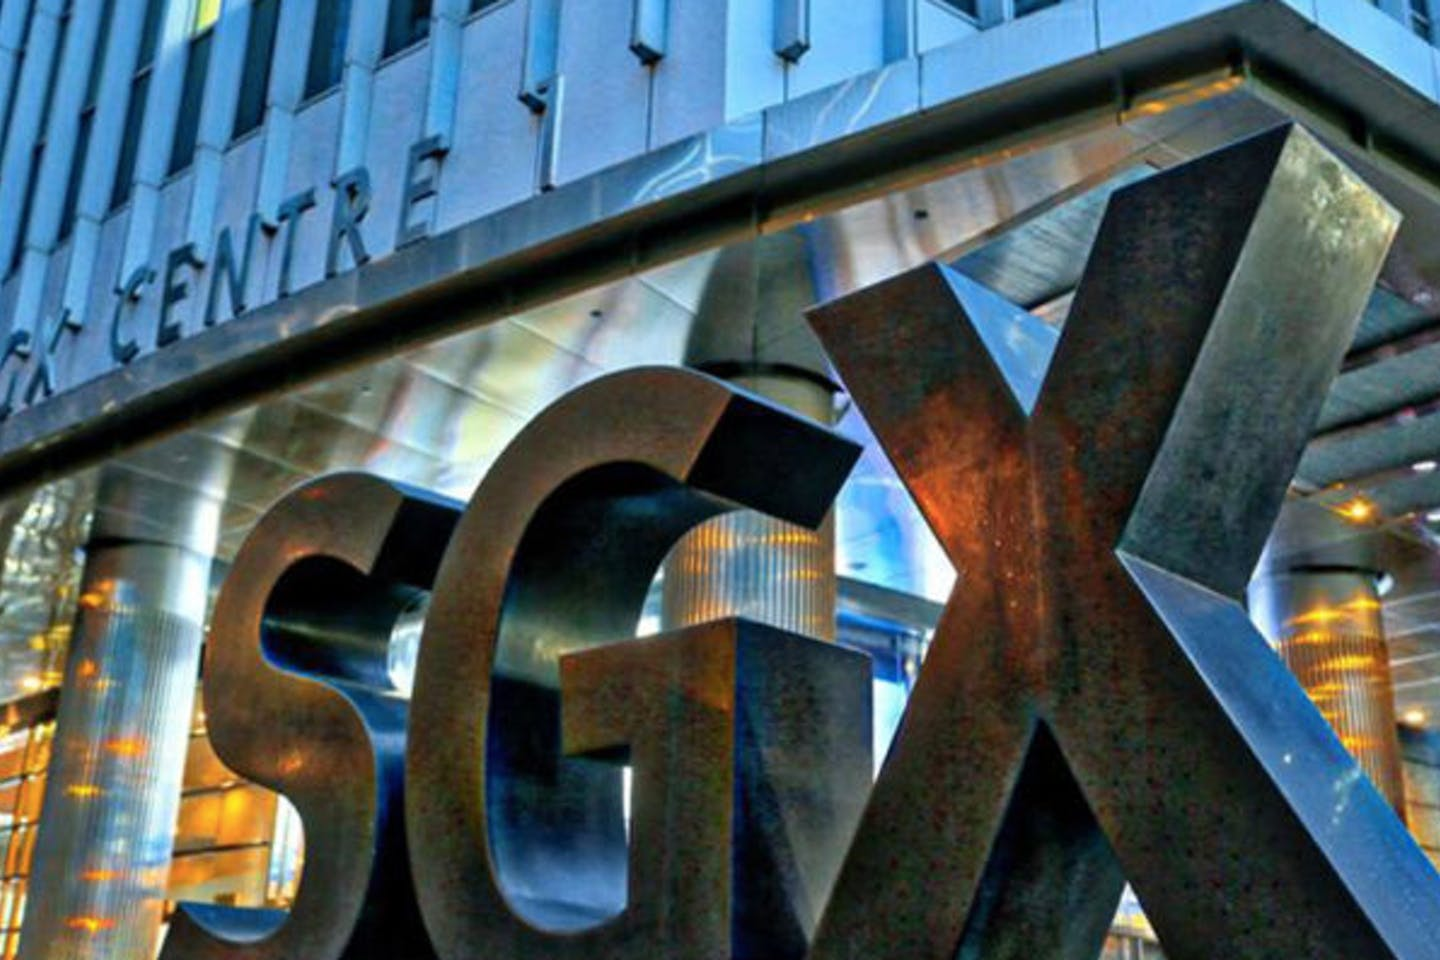 SGX RegCo, NUS Business School see improvement in companies' sustainability reporting quality and disclosures